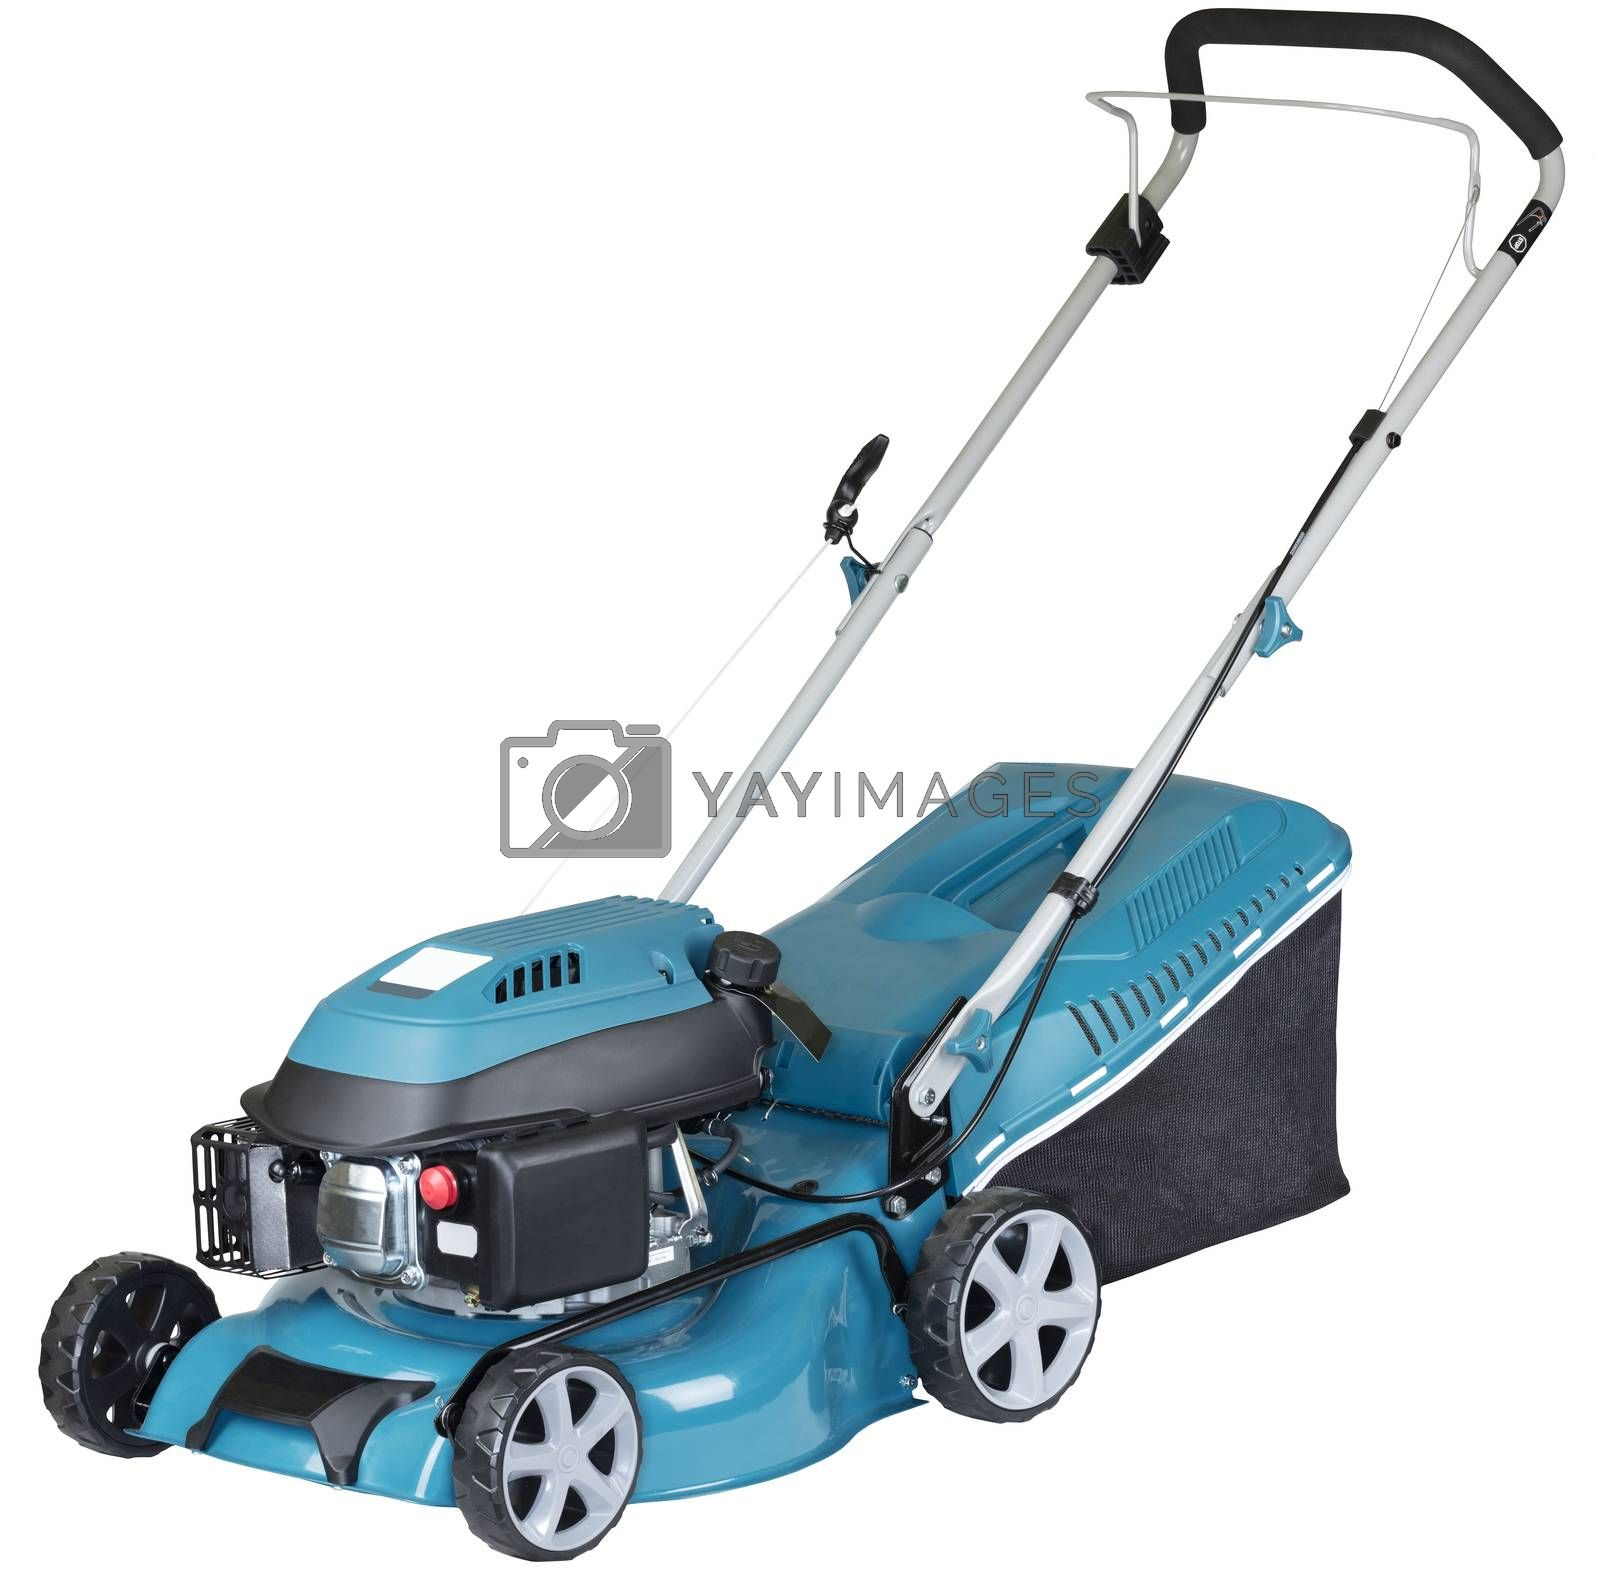 petrol mower on wheels turquoise colour with a bag of grass collector isolated on white background, high resolution, three quarters view